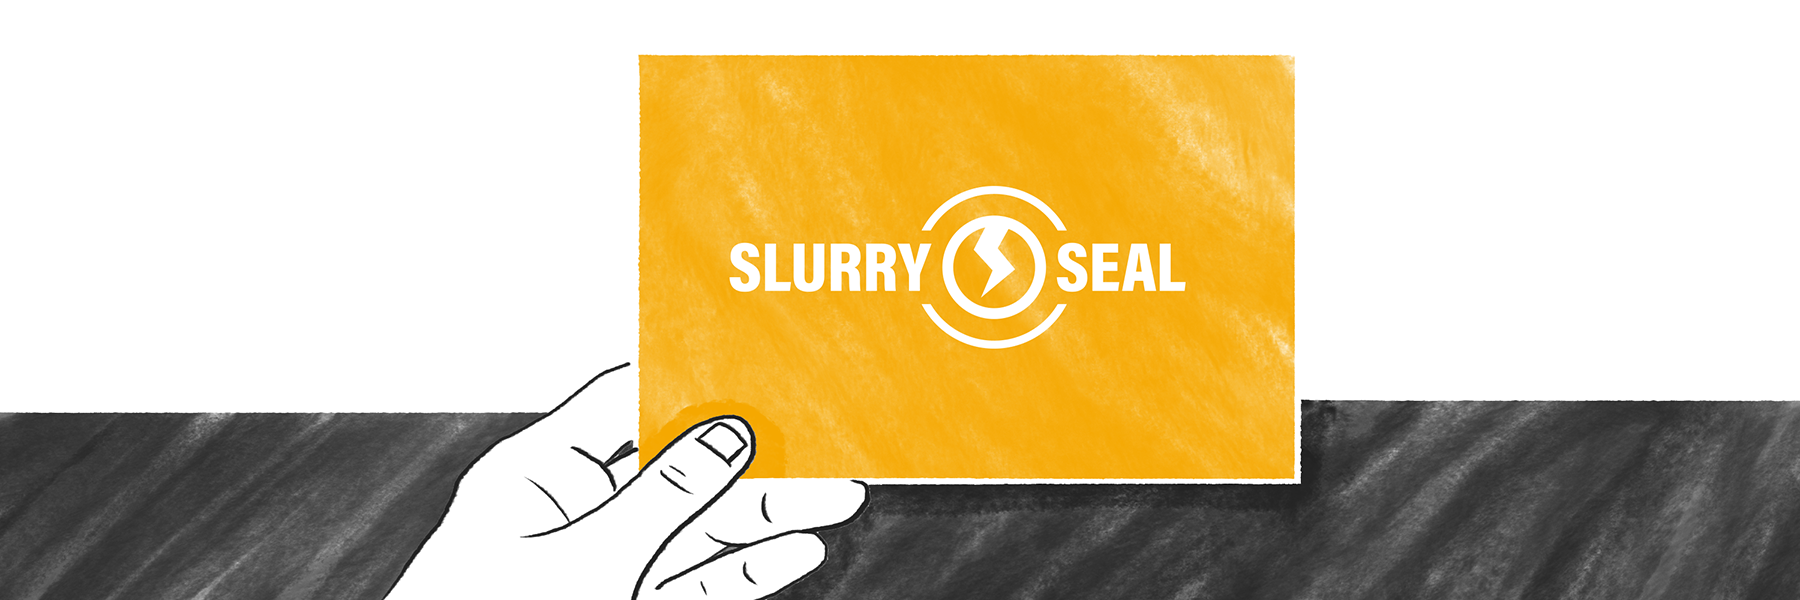 slurry seal graphic 3